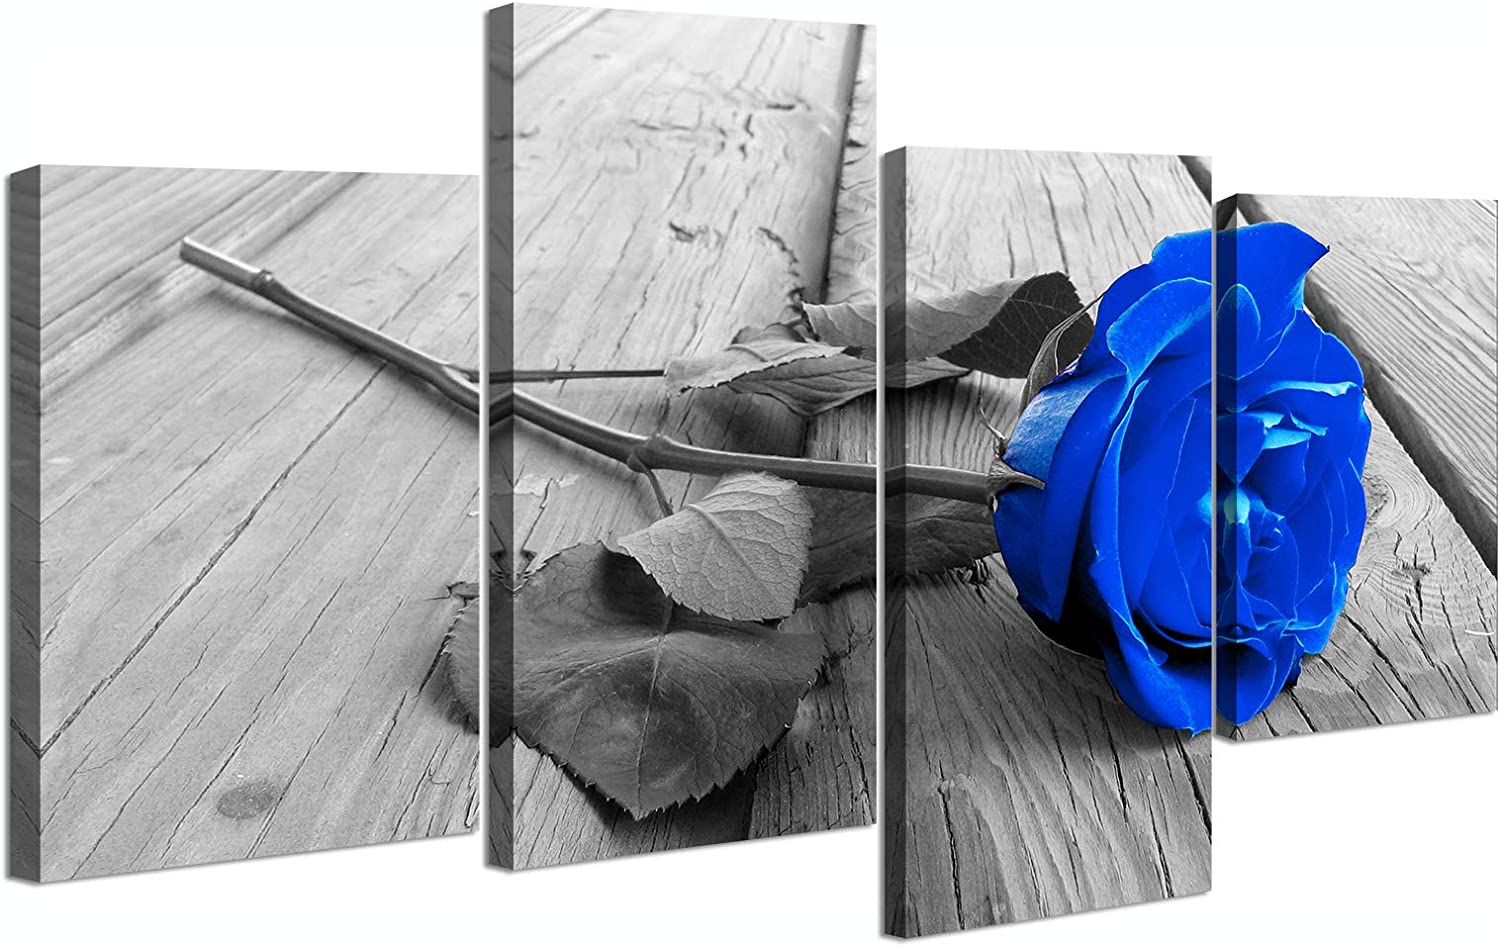 Royal Blue Rose Picture for Home Decor Canvas Wall Art Flower Posters Paintings Valentine Day Couple Gifts Modern Rustic Farmhouse Decorations Stretched and Framed 4 Piece